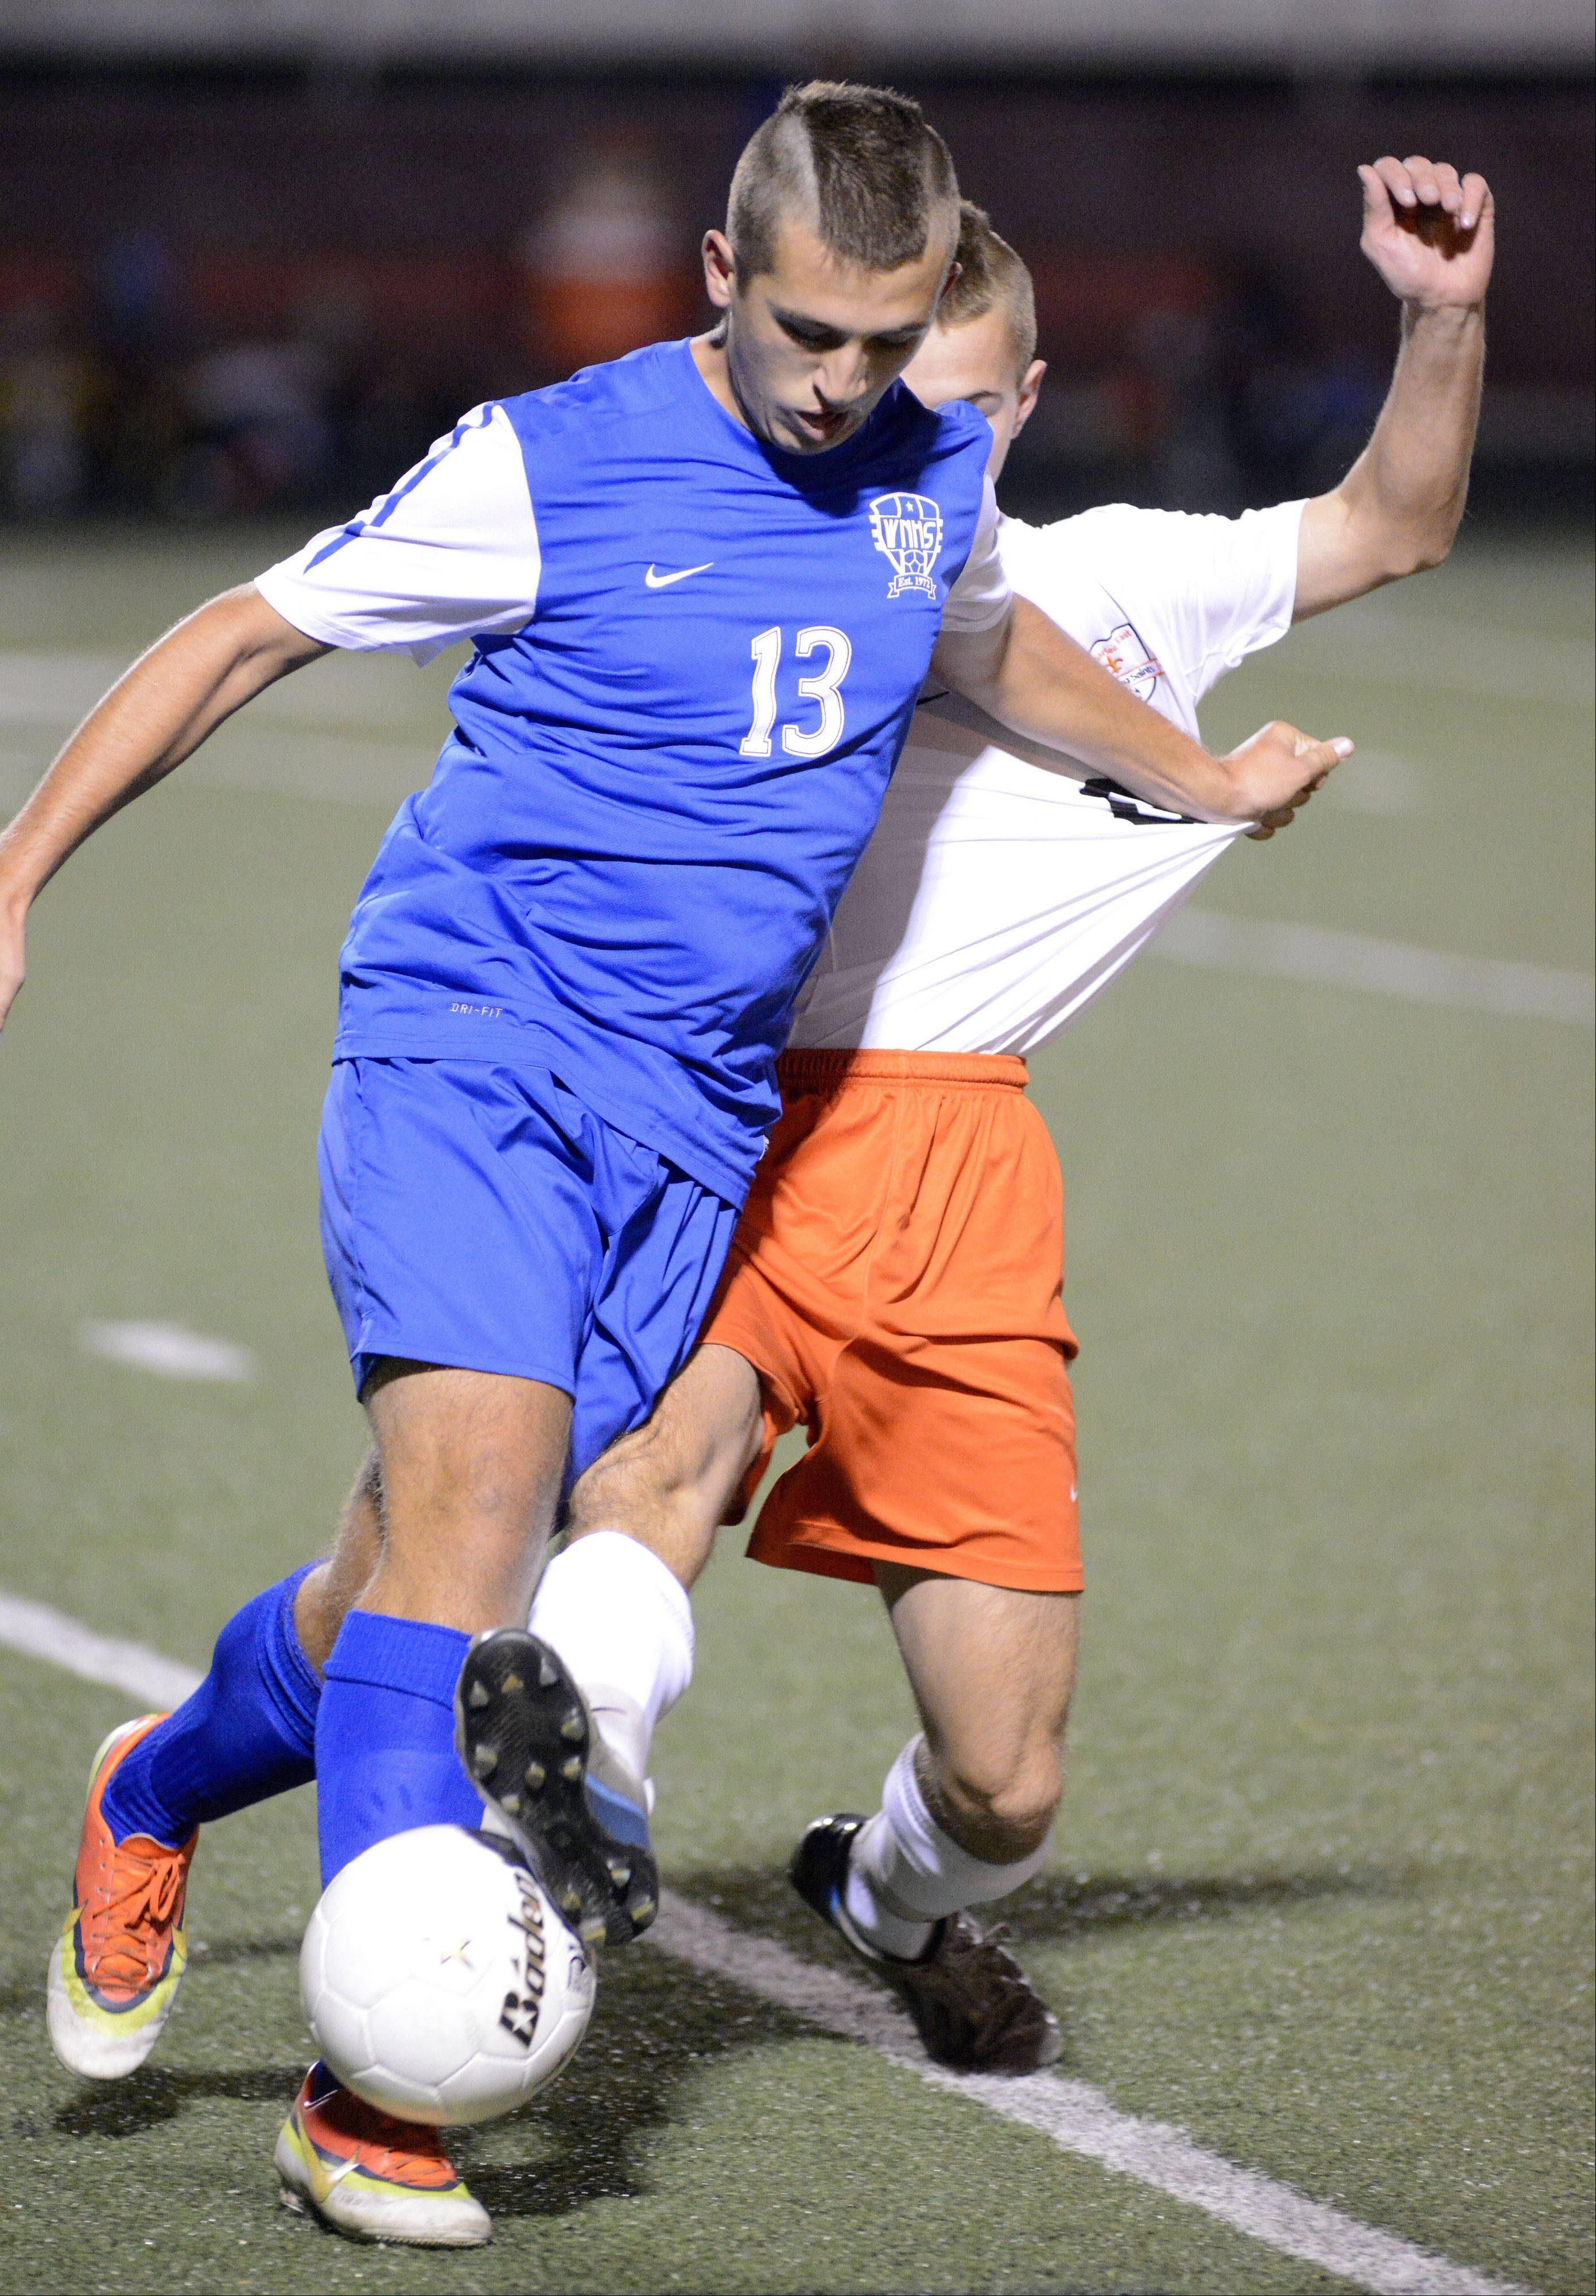 Wheaton North's Zoran Tanasic battles St. Charles East's Kyle McLean for the ball in the first half of the Schaumburg sectional semifinals on Tuesday, October 29.